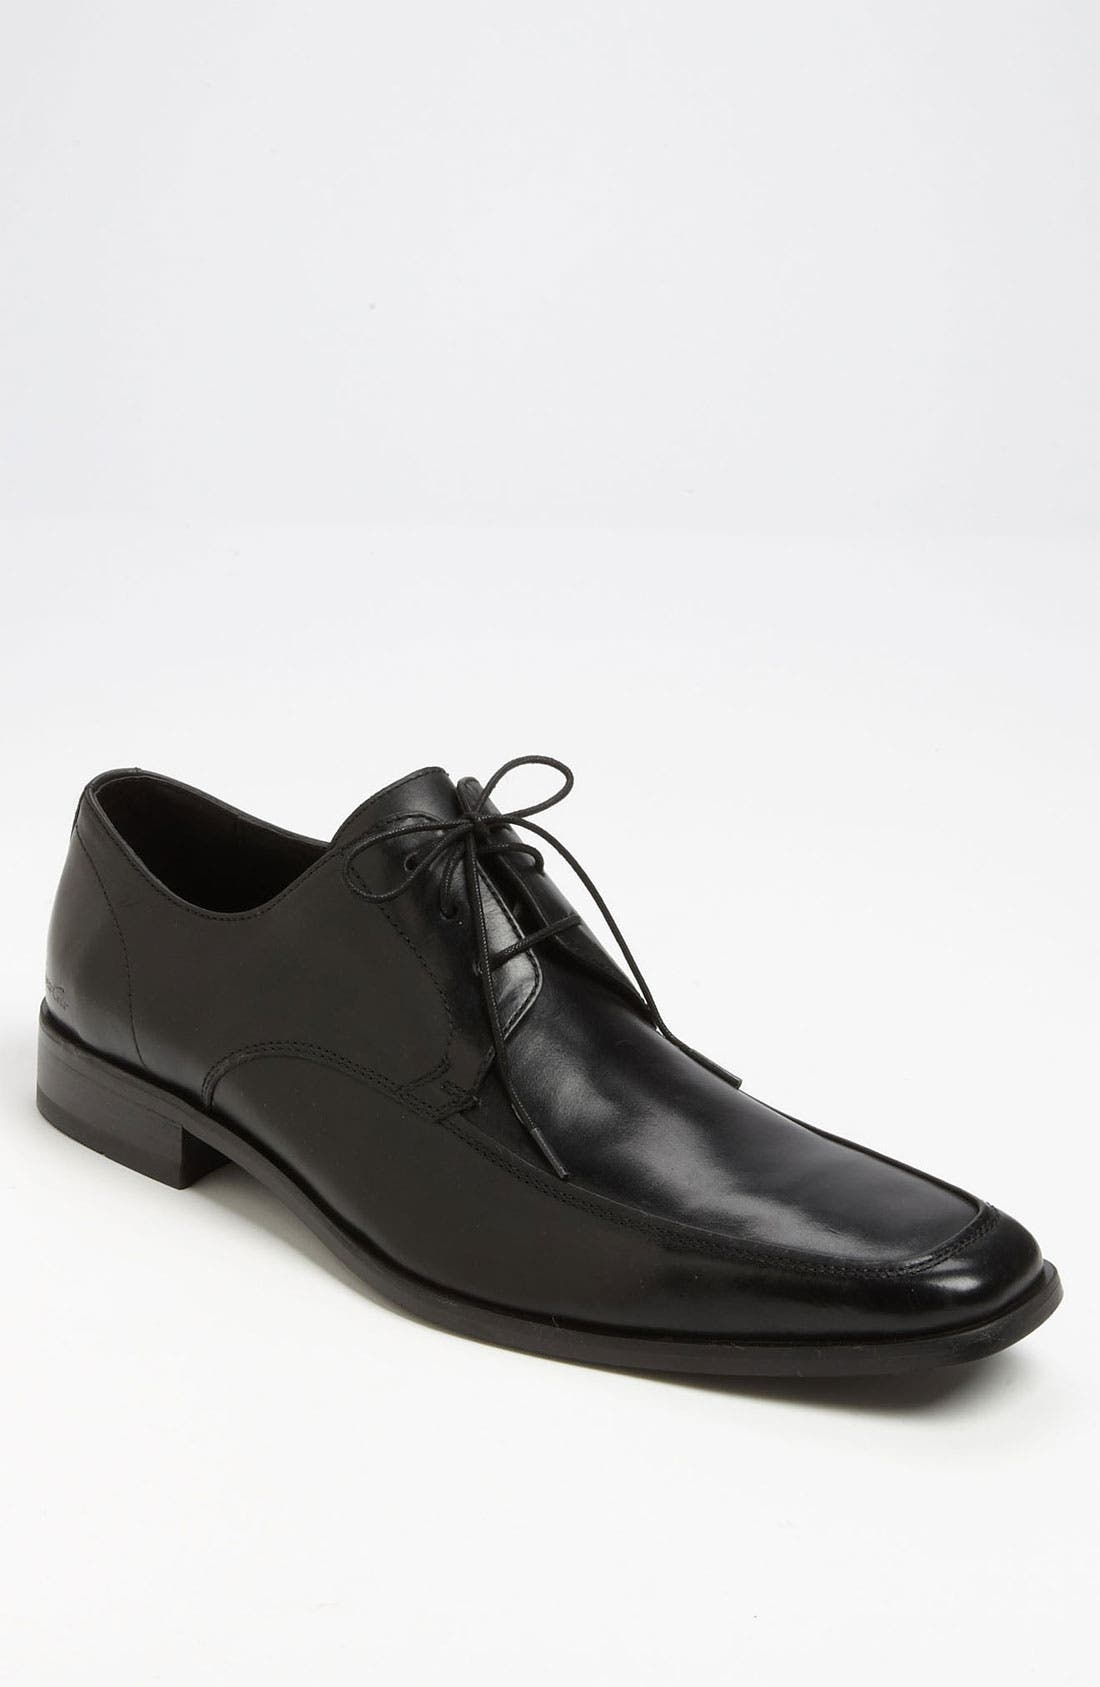 Alternate Image 1 Selected - Kenneth Cole New York 'First Sight' Apron Toe Derby